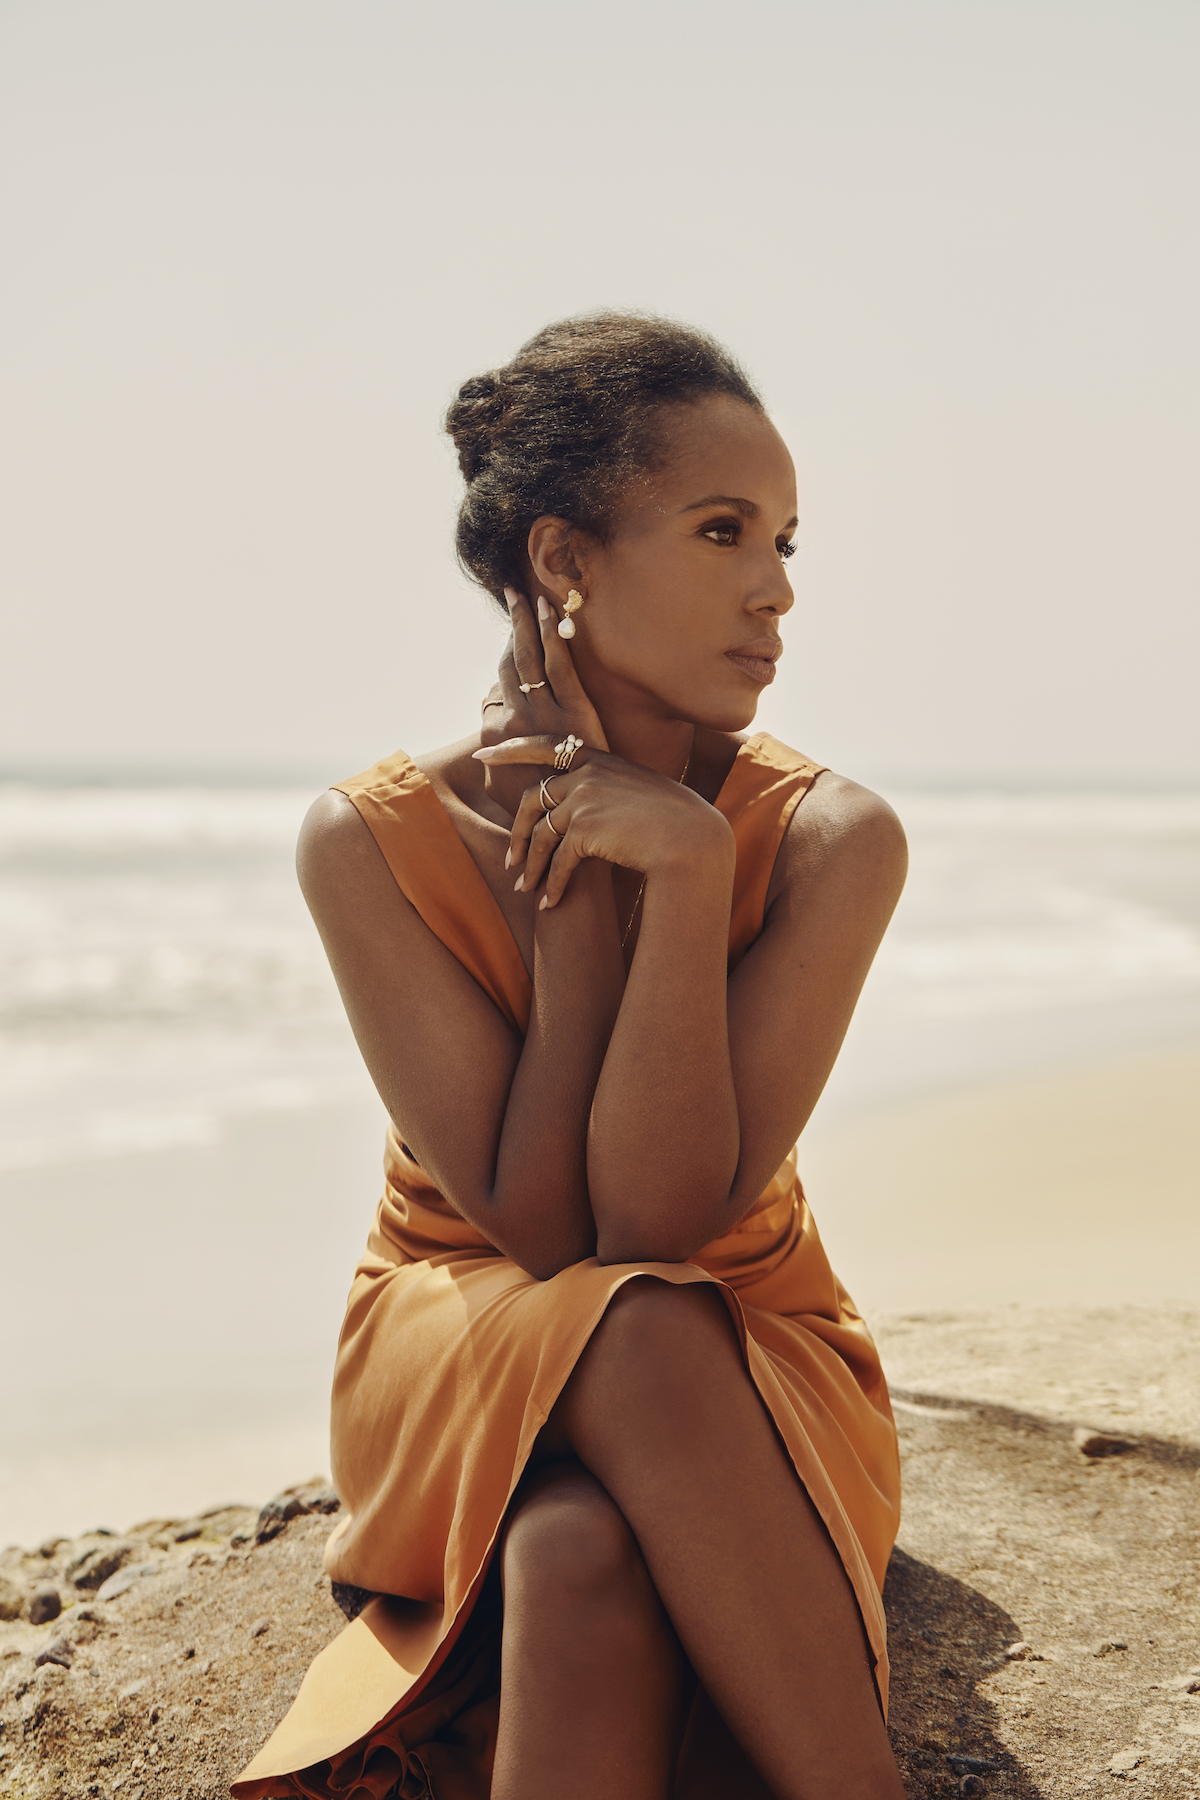 Aurate x Kerry Washington Mother's Day 2021 Jewelry Collection - Photos by David Urbanke